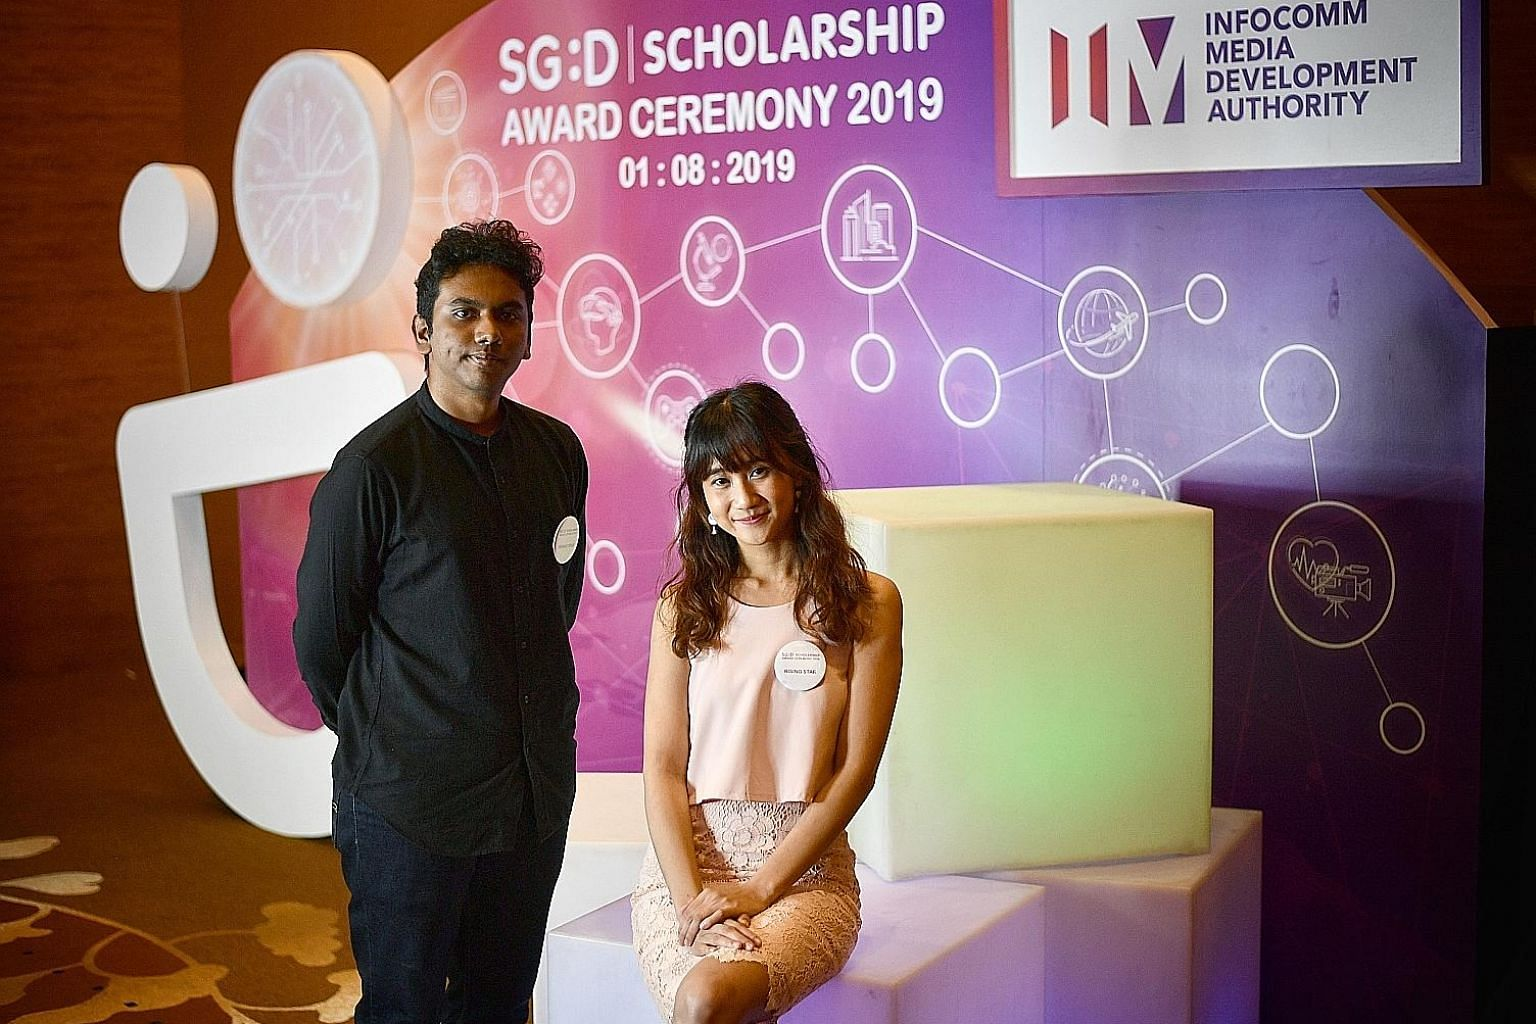 Mr Nishok and Ms Farren Tang are among the 81 recipients of the Infocomm Media Development Authority's inaugural Singapore Digital Scholarship. Mr Nishok plans to major in film and production at university, while Ms Tang is pursuing a master's degree